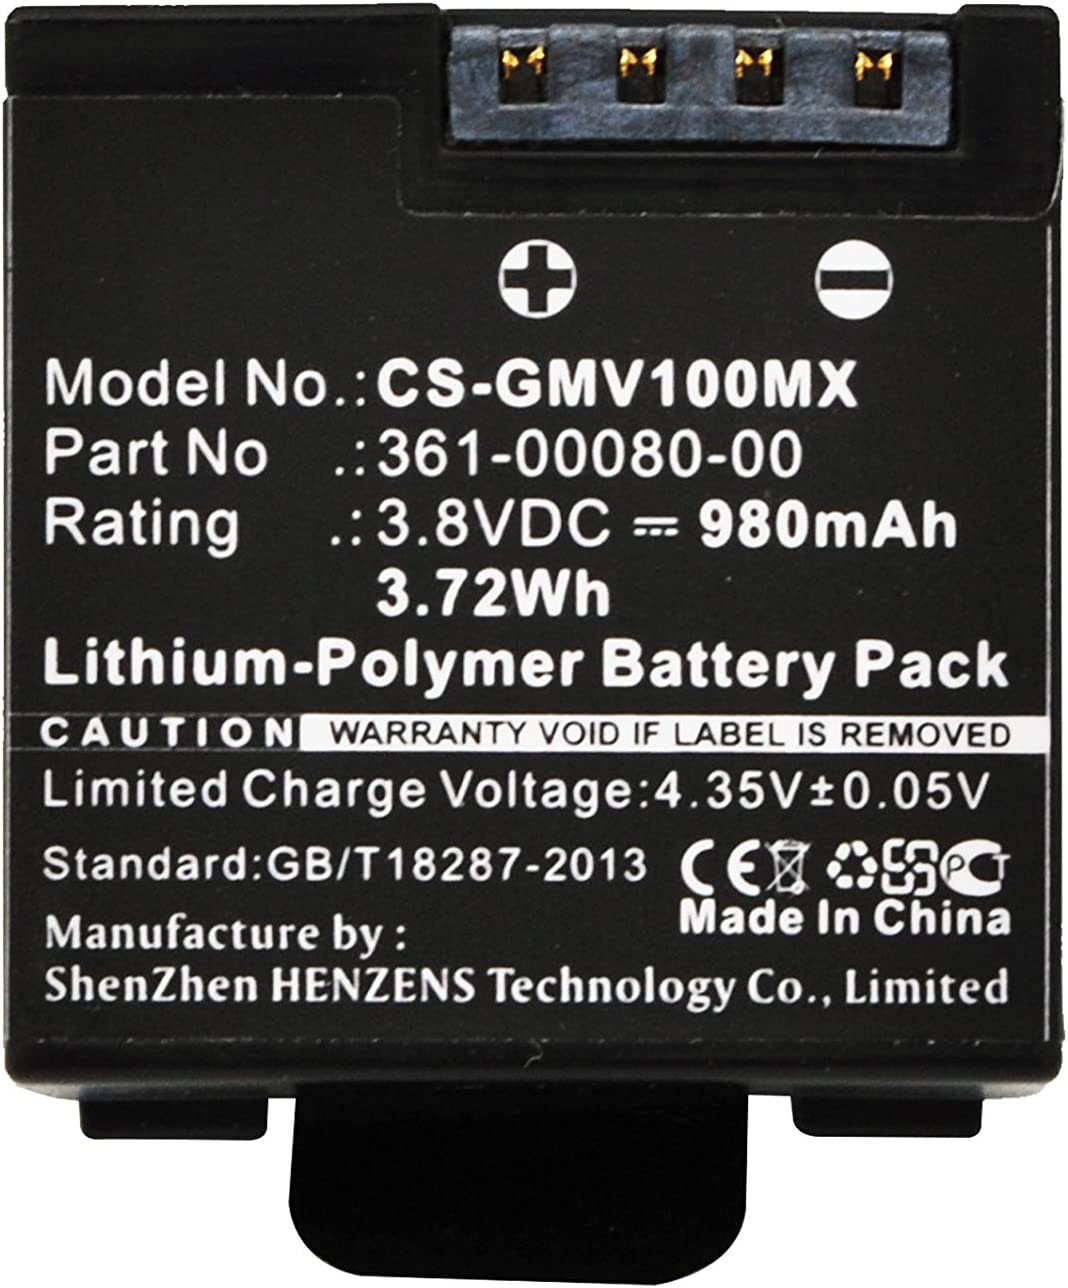 Replacement Battery for Garmin 010-12256-01 361-00080-00 Virb X